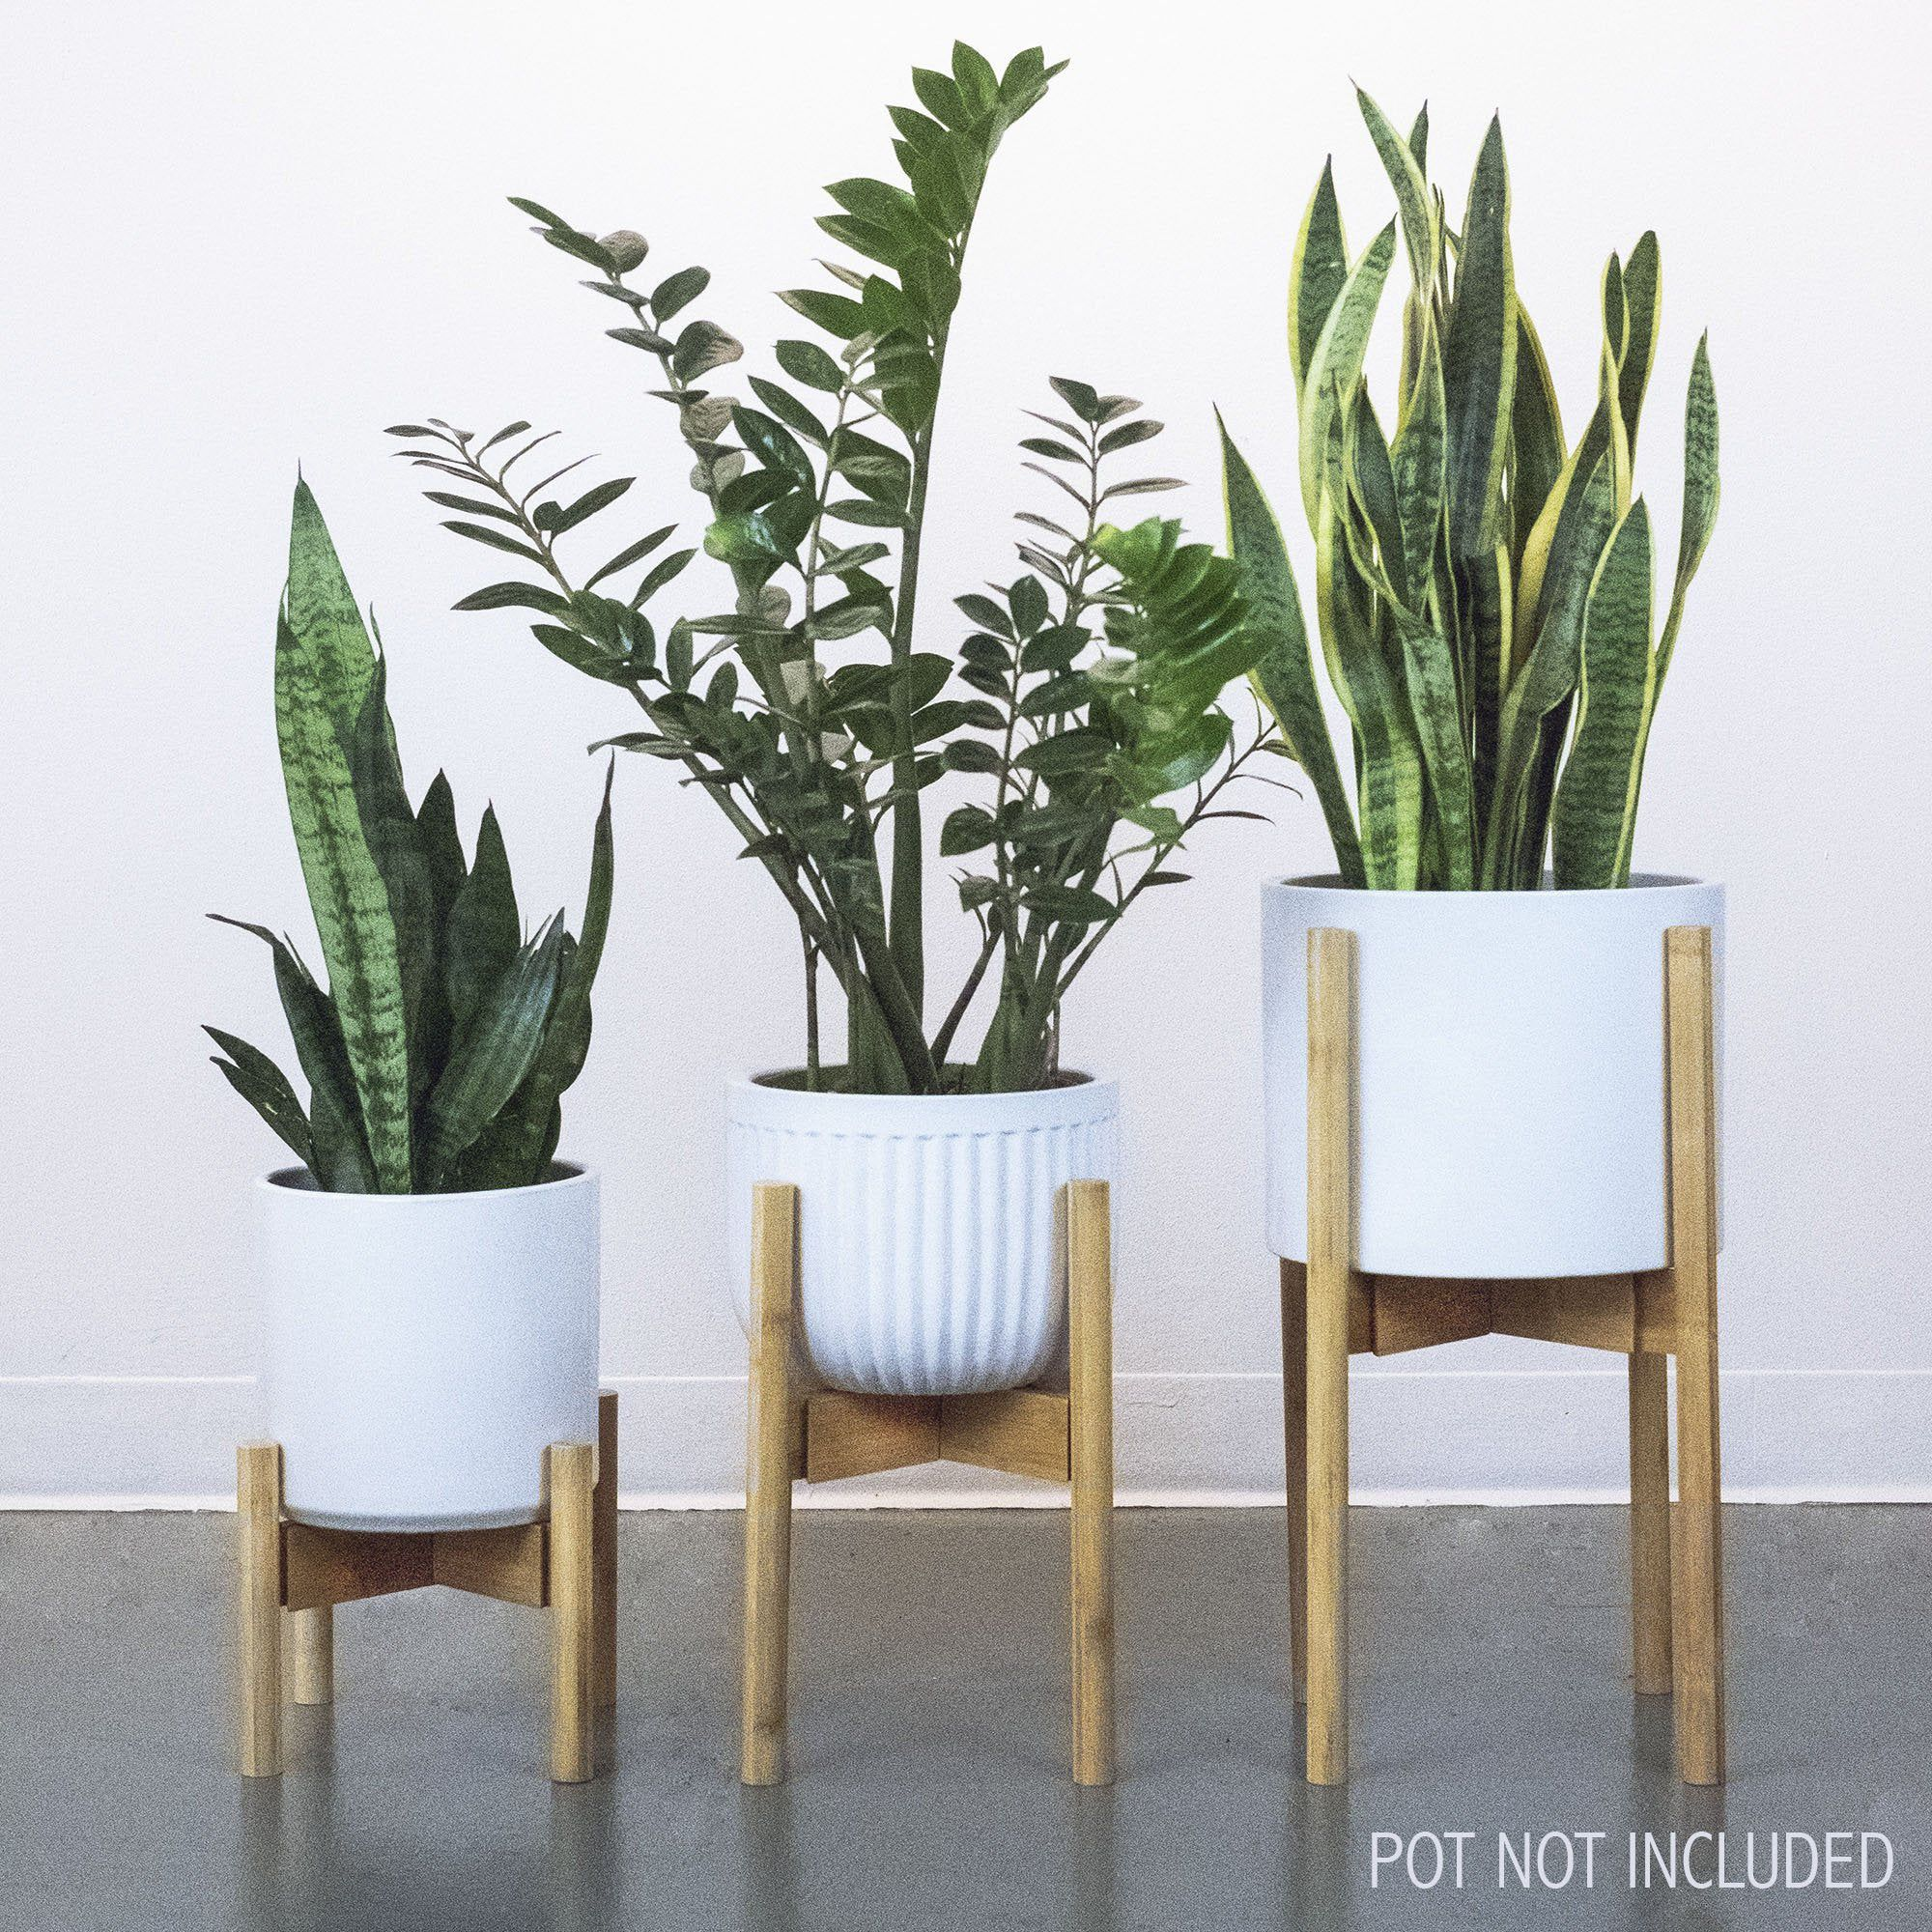 Image By Sabariah Che Mat On House Plant Stand Indoor Plant Stand House Plants Indoor